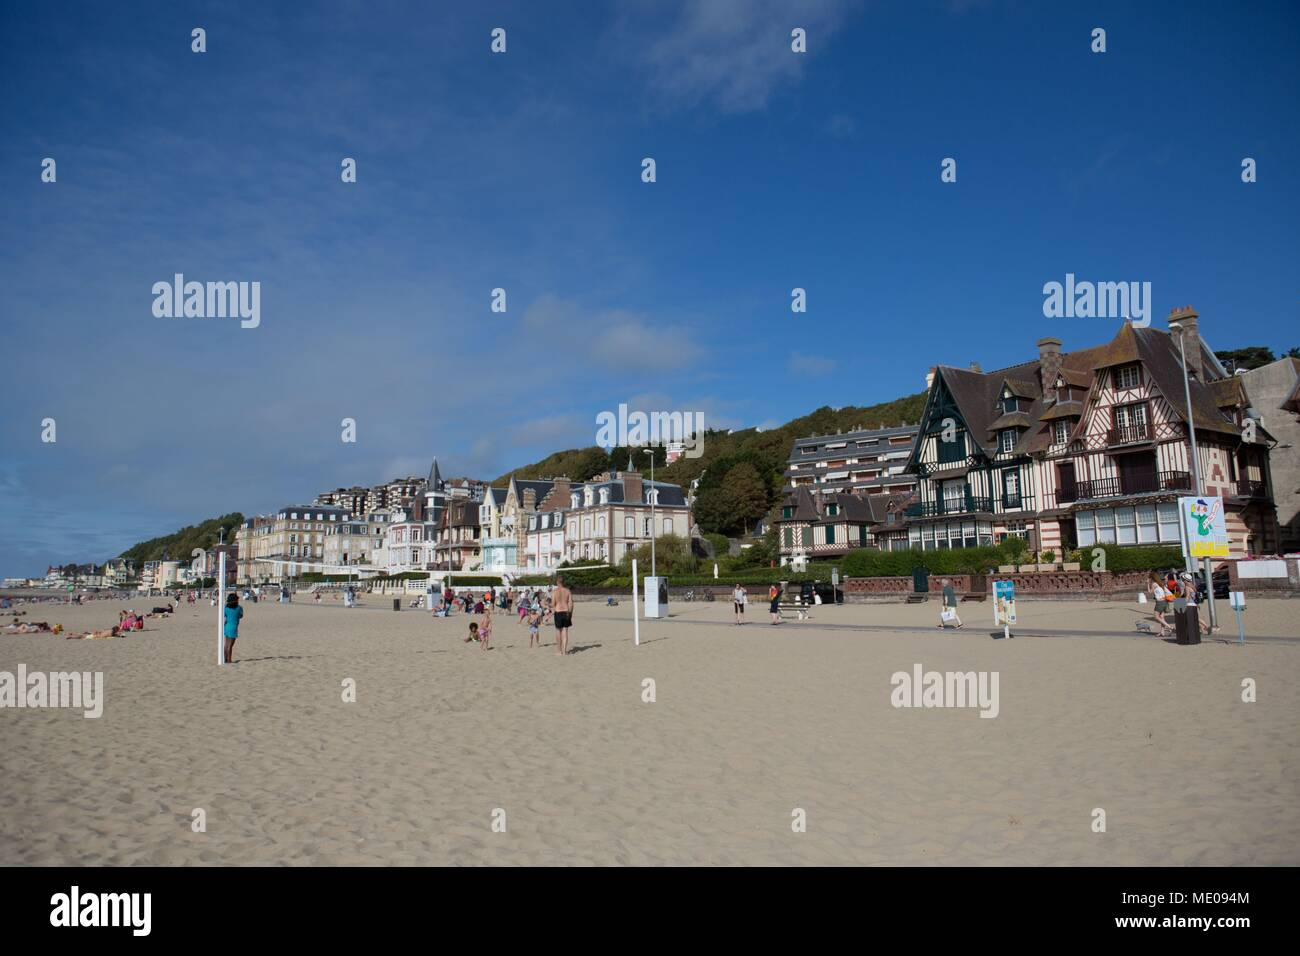 Nice France, Normandy Region, Former Lower Normandy, Trouville Sur Mer, Beach,  Villas On The Seafront